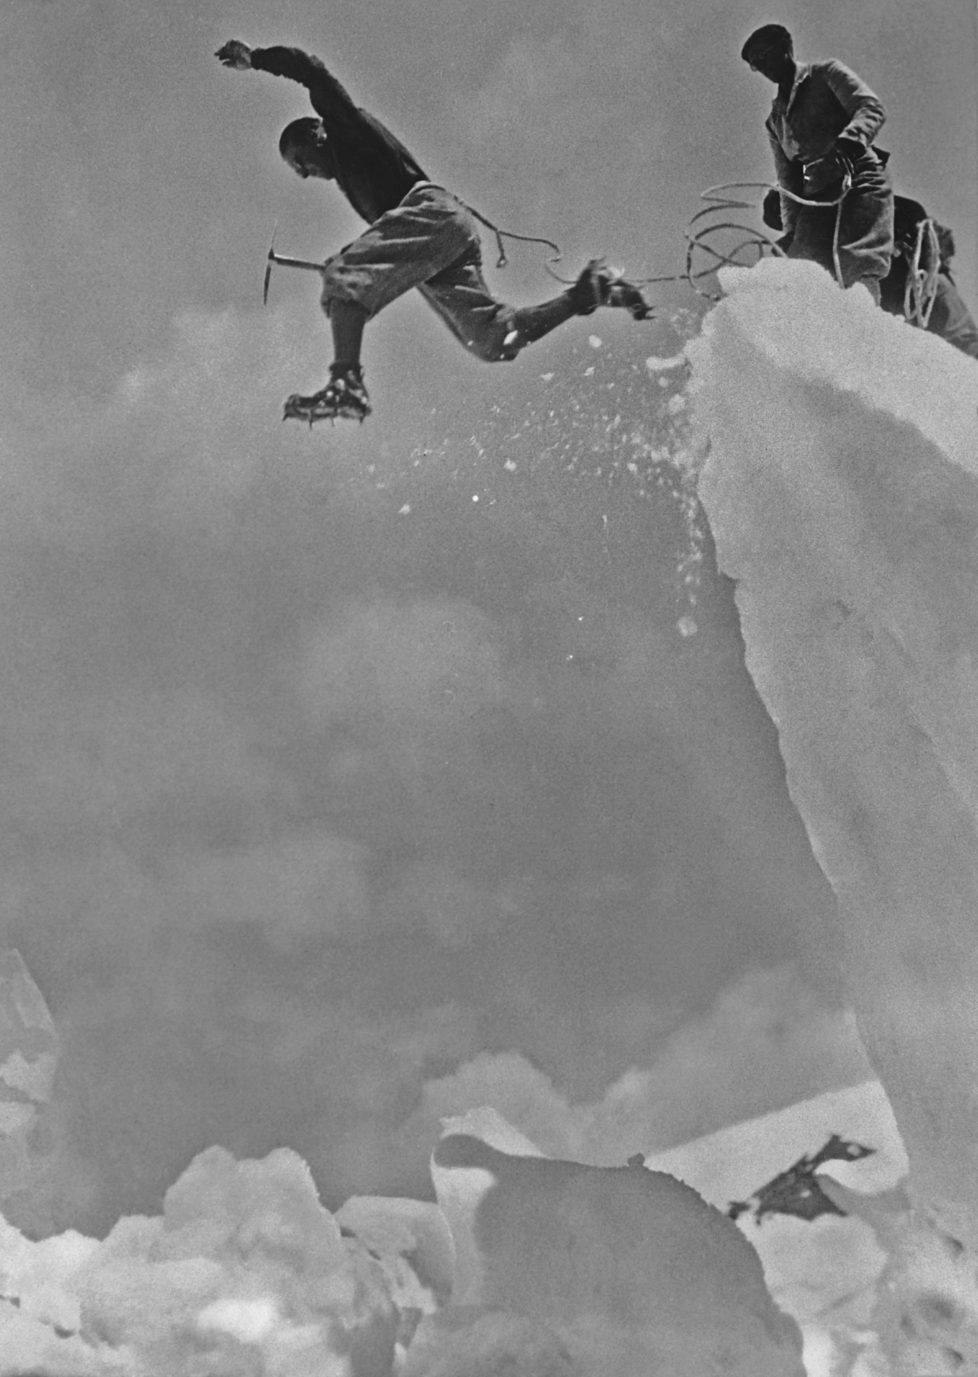 A Swiss mountaineer leaps over a crevasse in the Swiss Alps, 5th December 1930. (Photo by Henry Miller News Picture Service/Archive Photos/Getty Images)